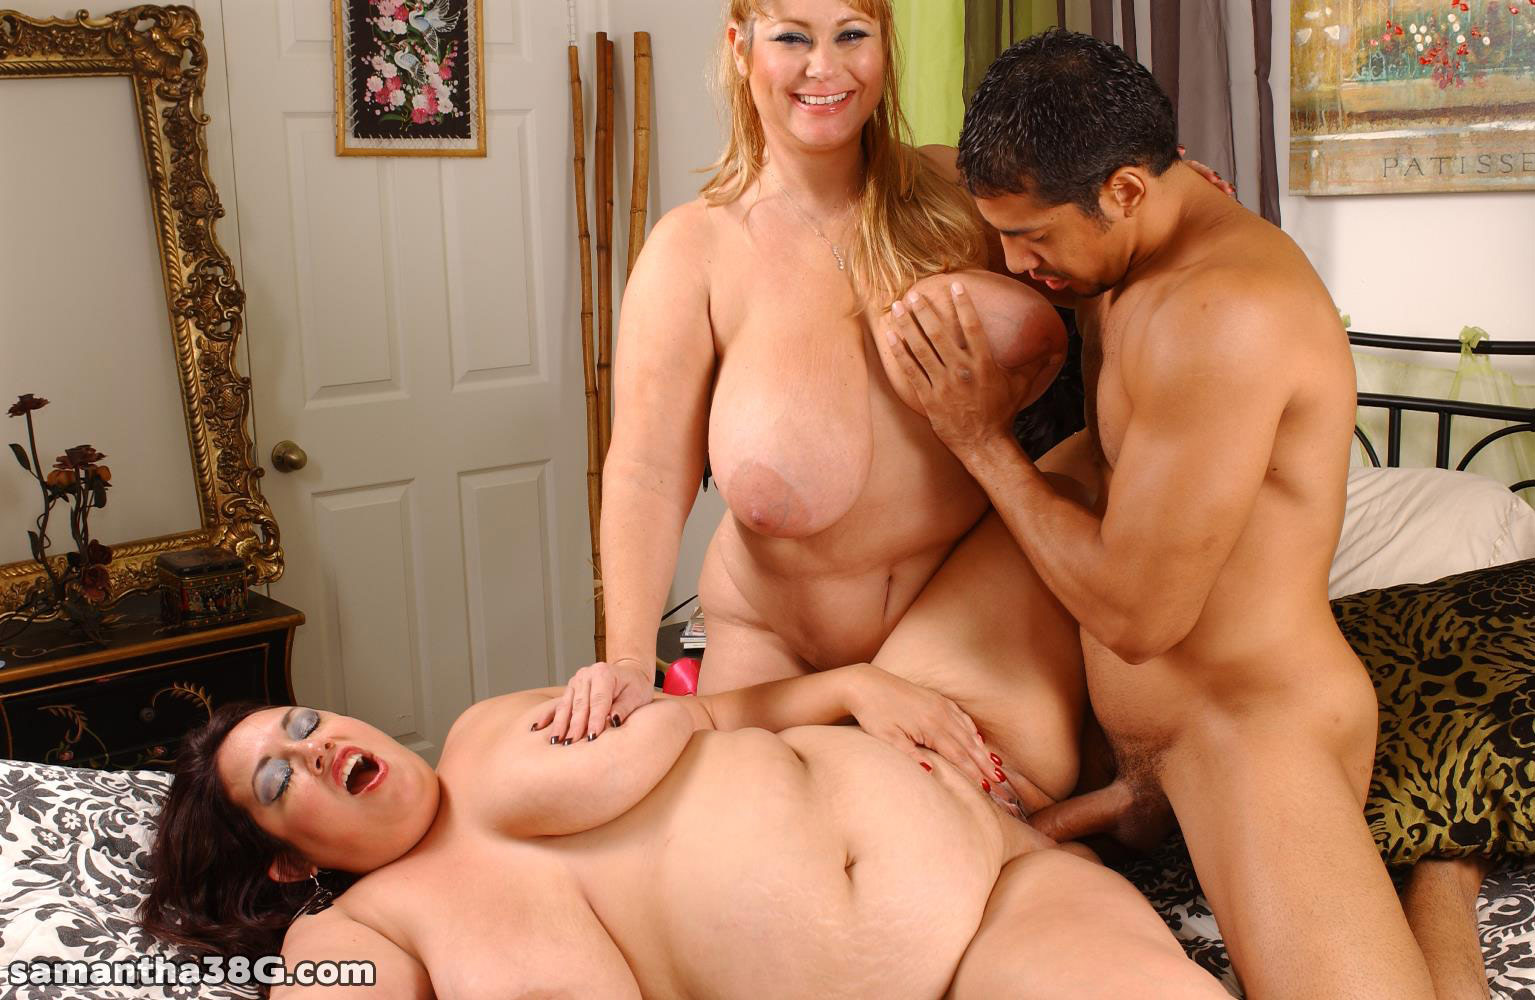 Bisexual on slutload